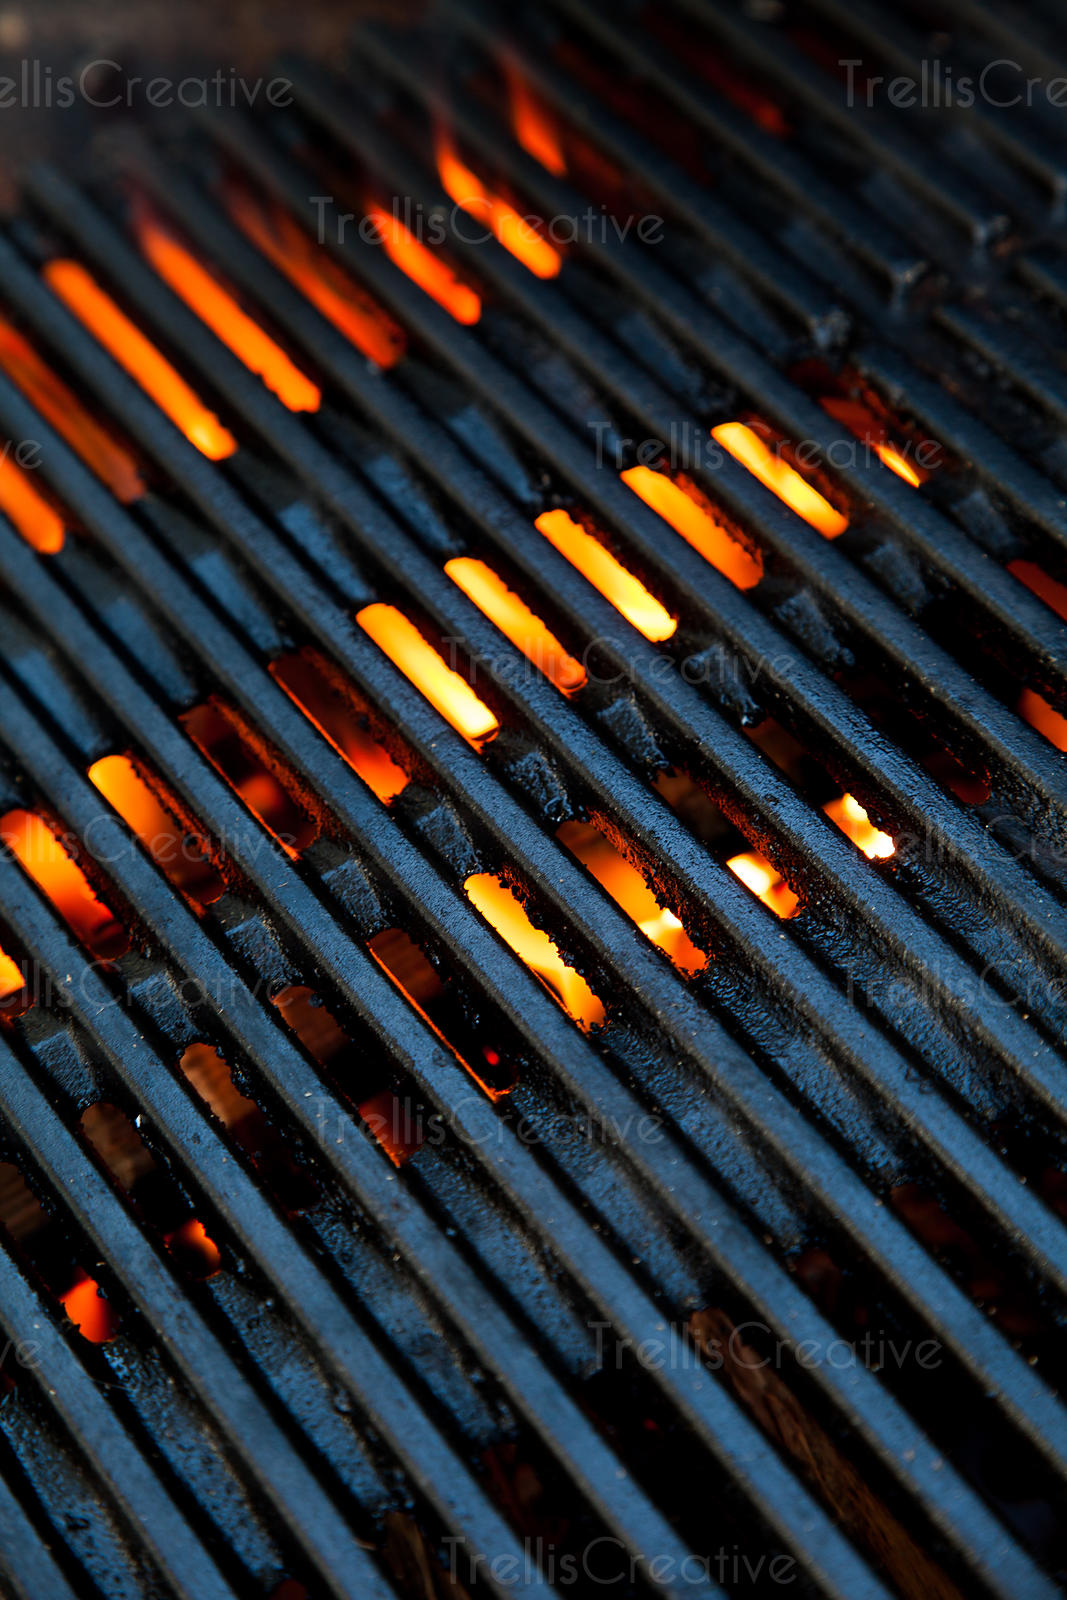 Embers of hot coals heat up the barbeque grill